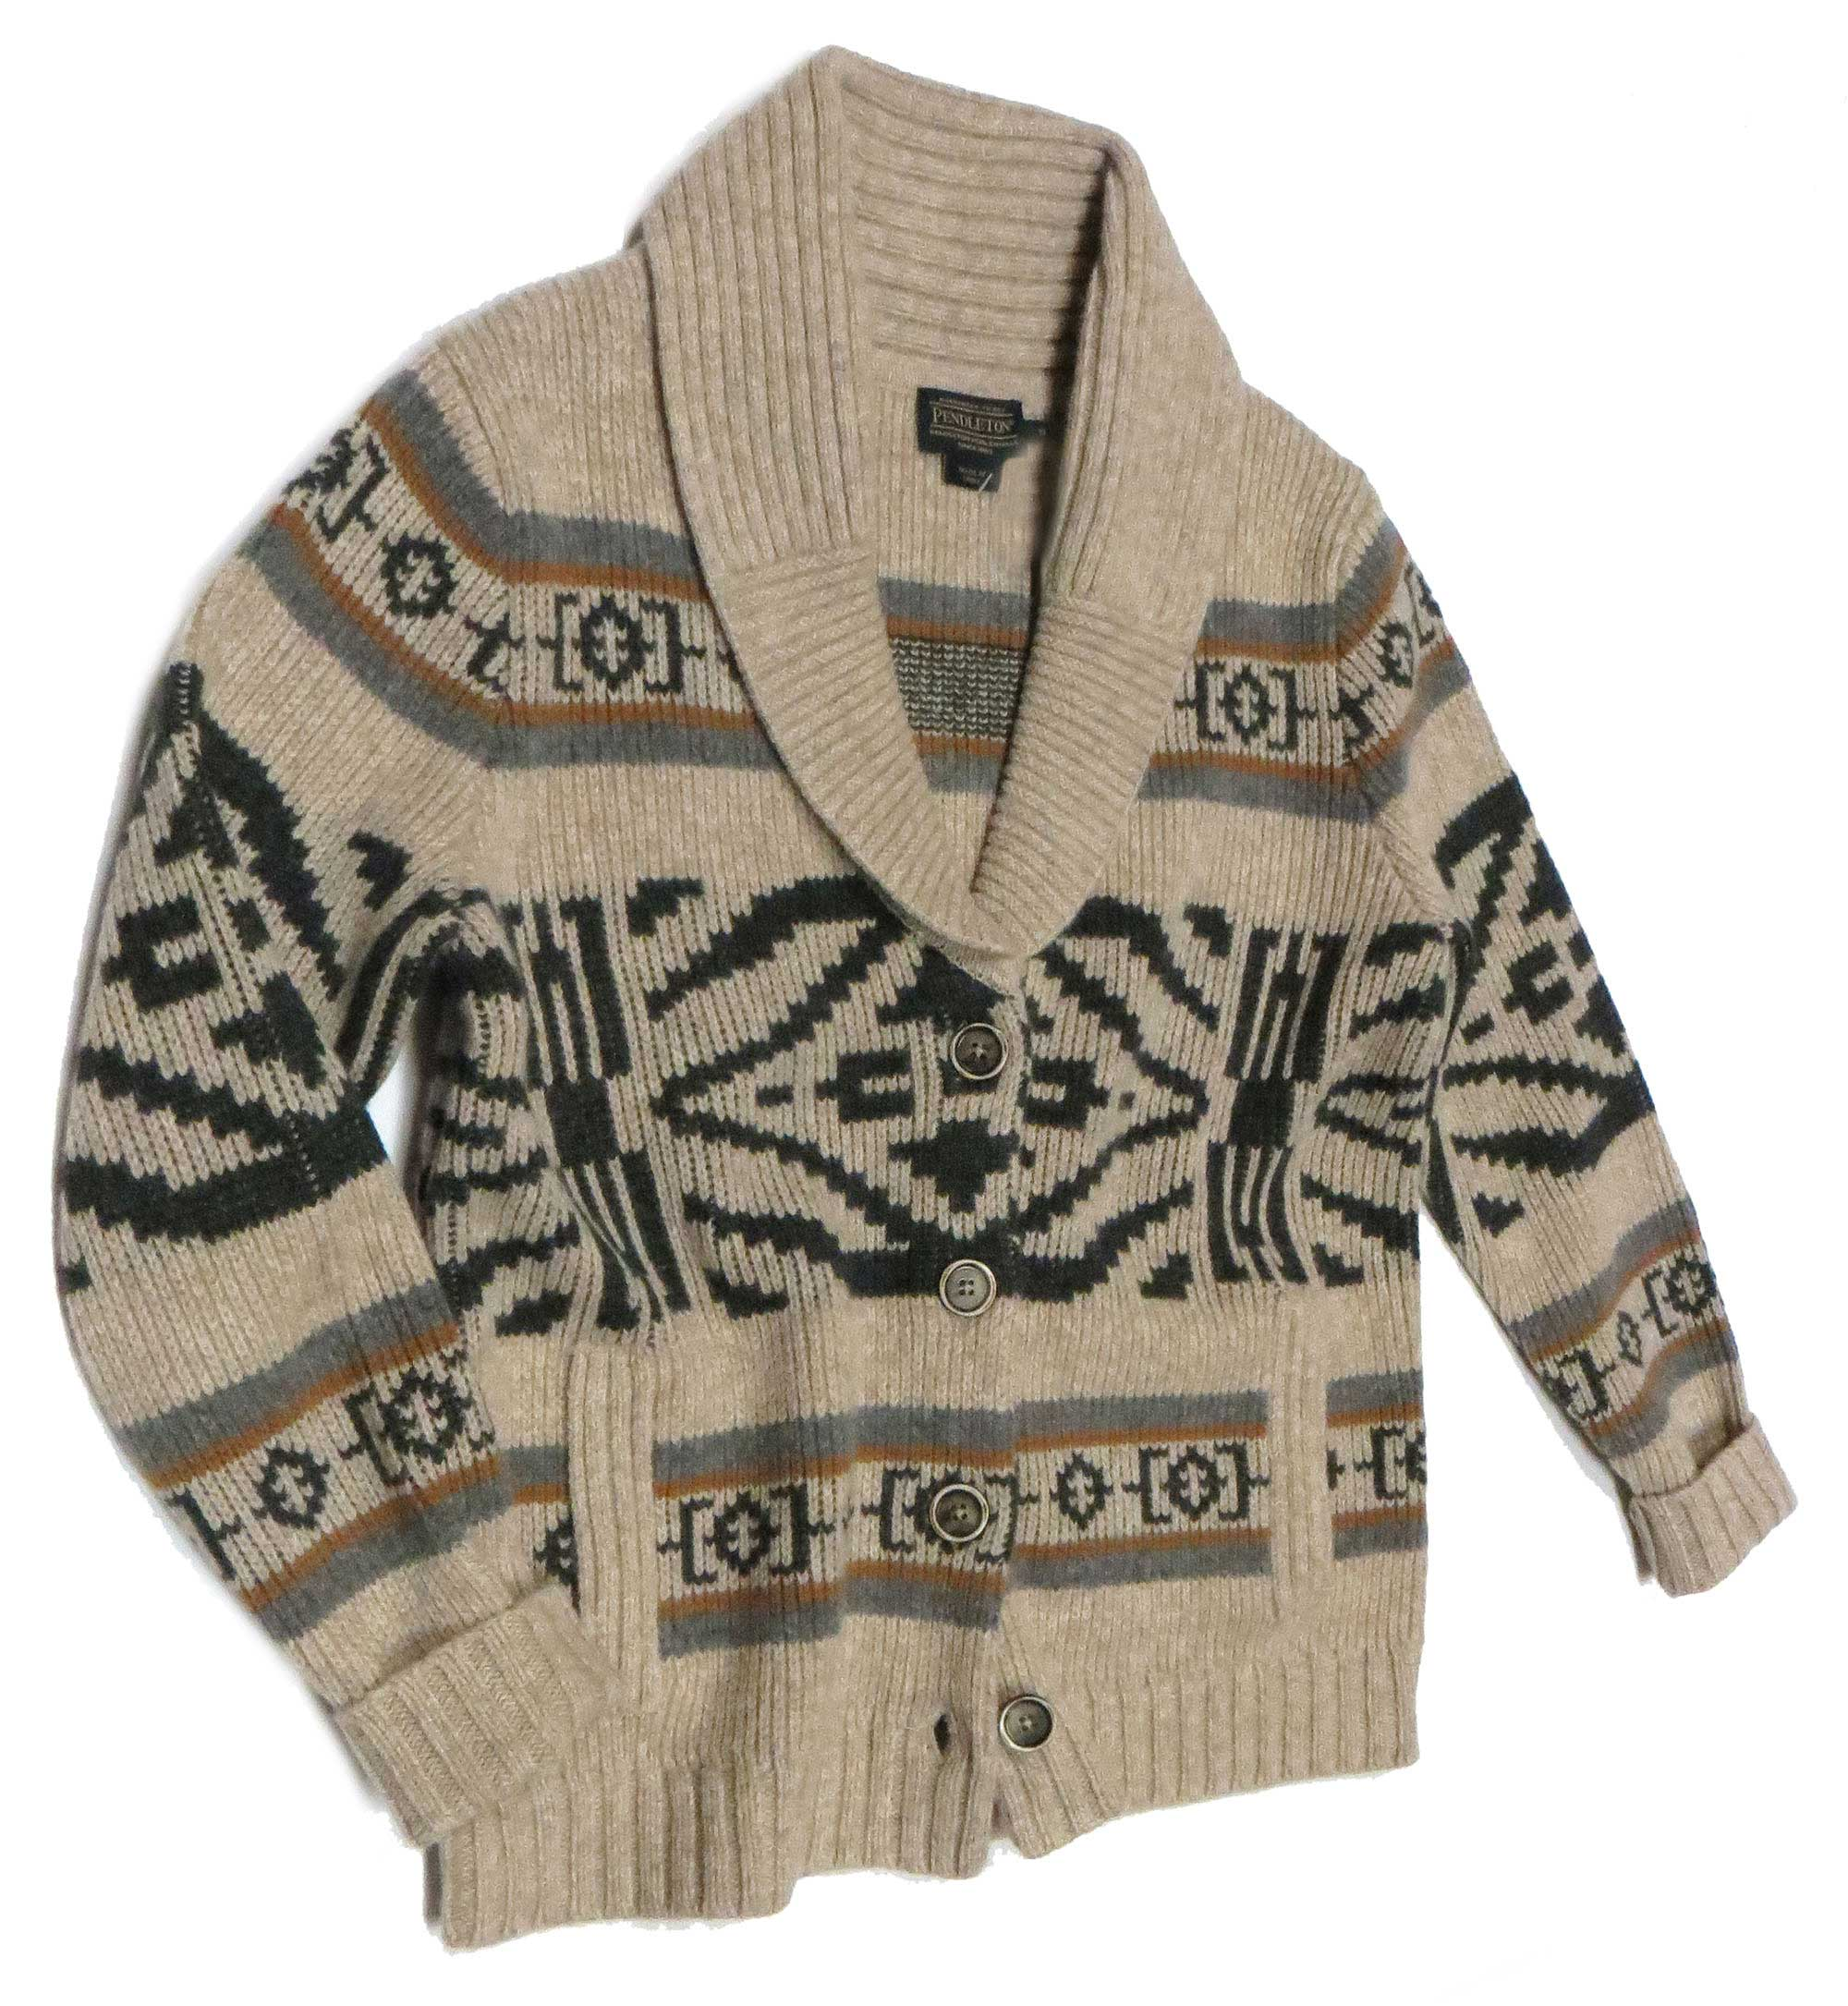 Big Lebowski Dude Sweater, for her